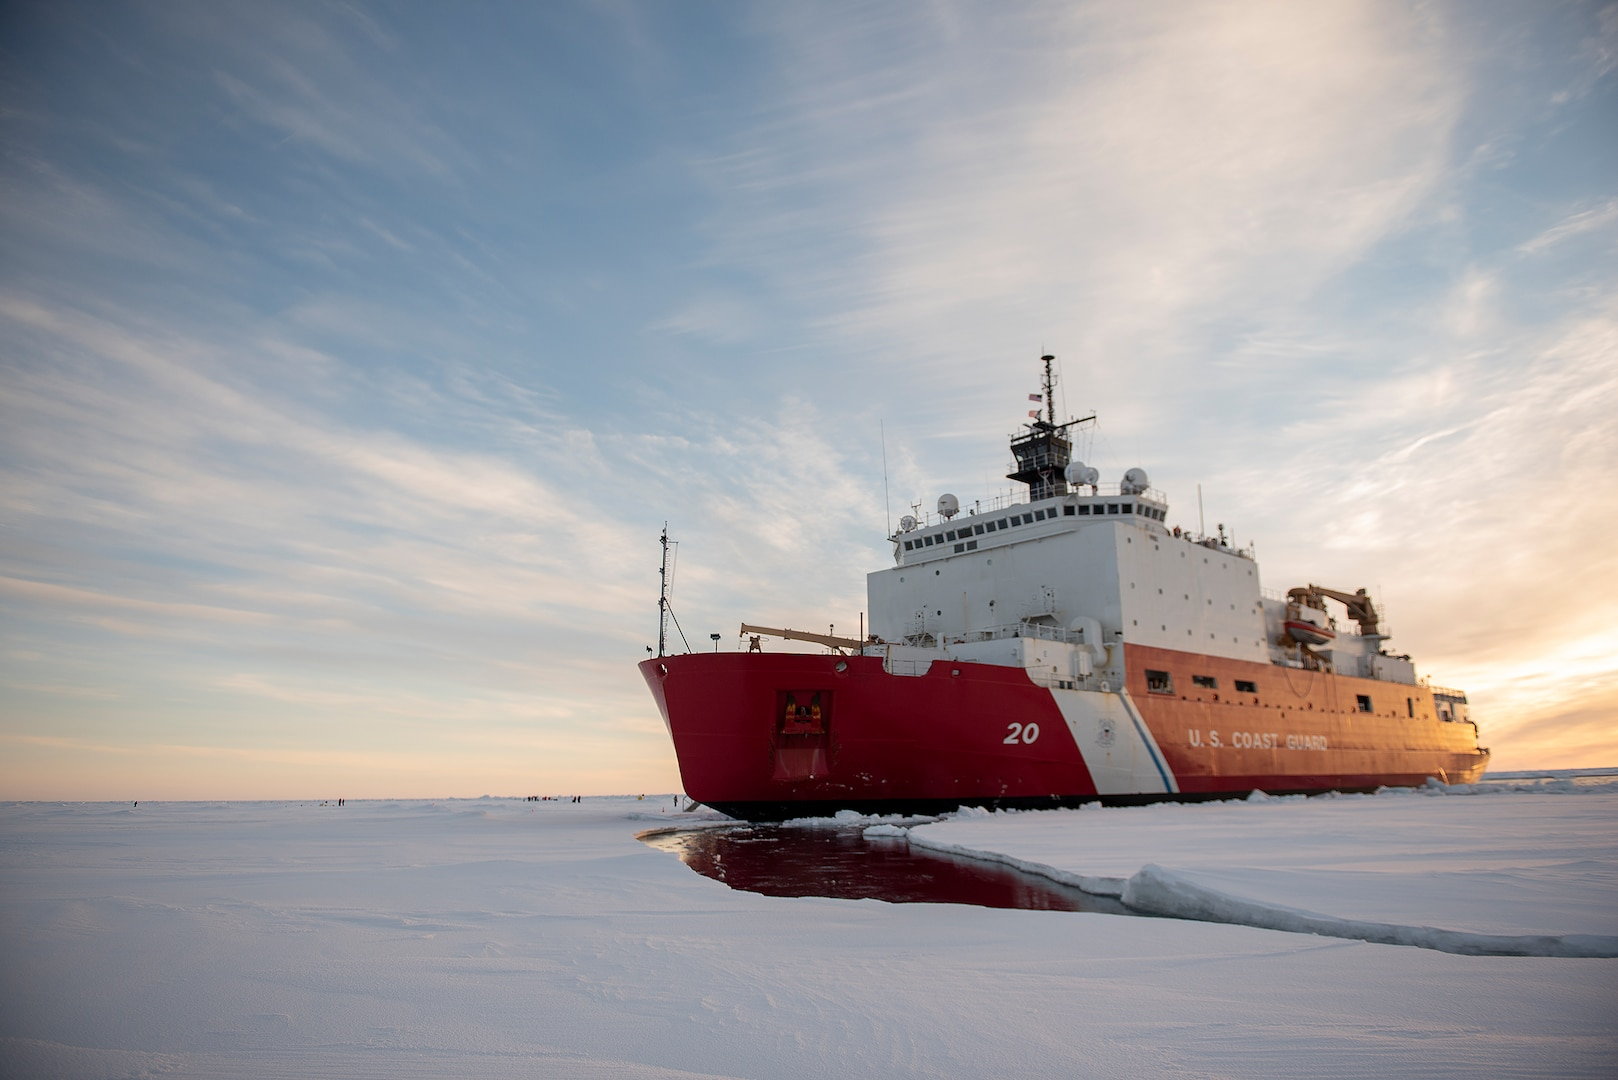 The U.S. Coast Guard Cutter Healy (WAGB-20) is in the ice Wednesday, Oct. 3, 2018, about 715 miles north of Barrow, Alaska, in the Arctic.  The Healy is in the Arctic with a team of about 30 scientists and engineers aboard deploying sensors and autonomous submarines to study stratified ocean dynamics and how environmental factors affect the water below the ice surface for the Office of Naval Research. The Healy, which is homeported in Seattle, is one of two ice breakers in U.S. service and is the only military ship dedicated to conducting research in the Arctic.